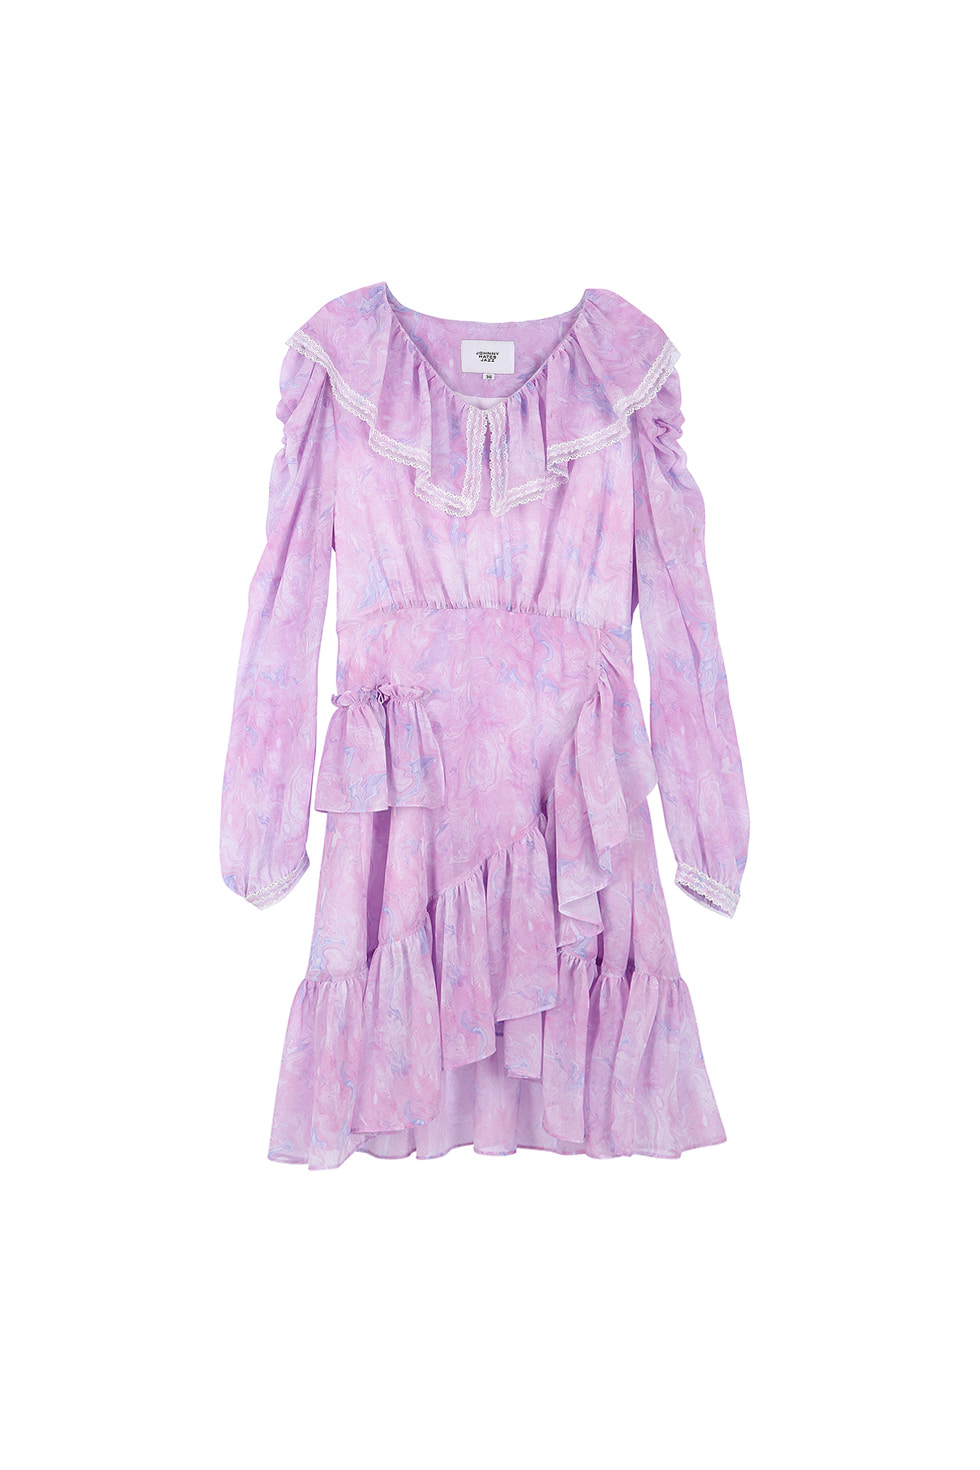 MABLING RUFFLE MINI DRESS - PURPLE